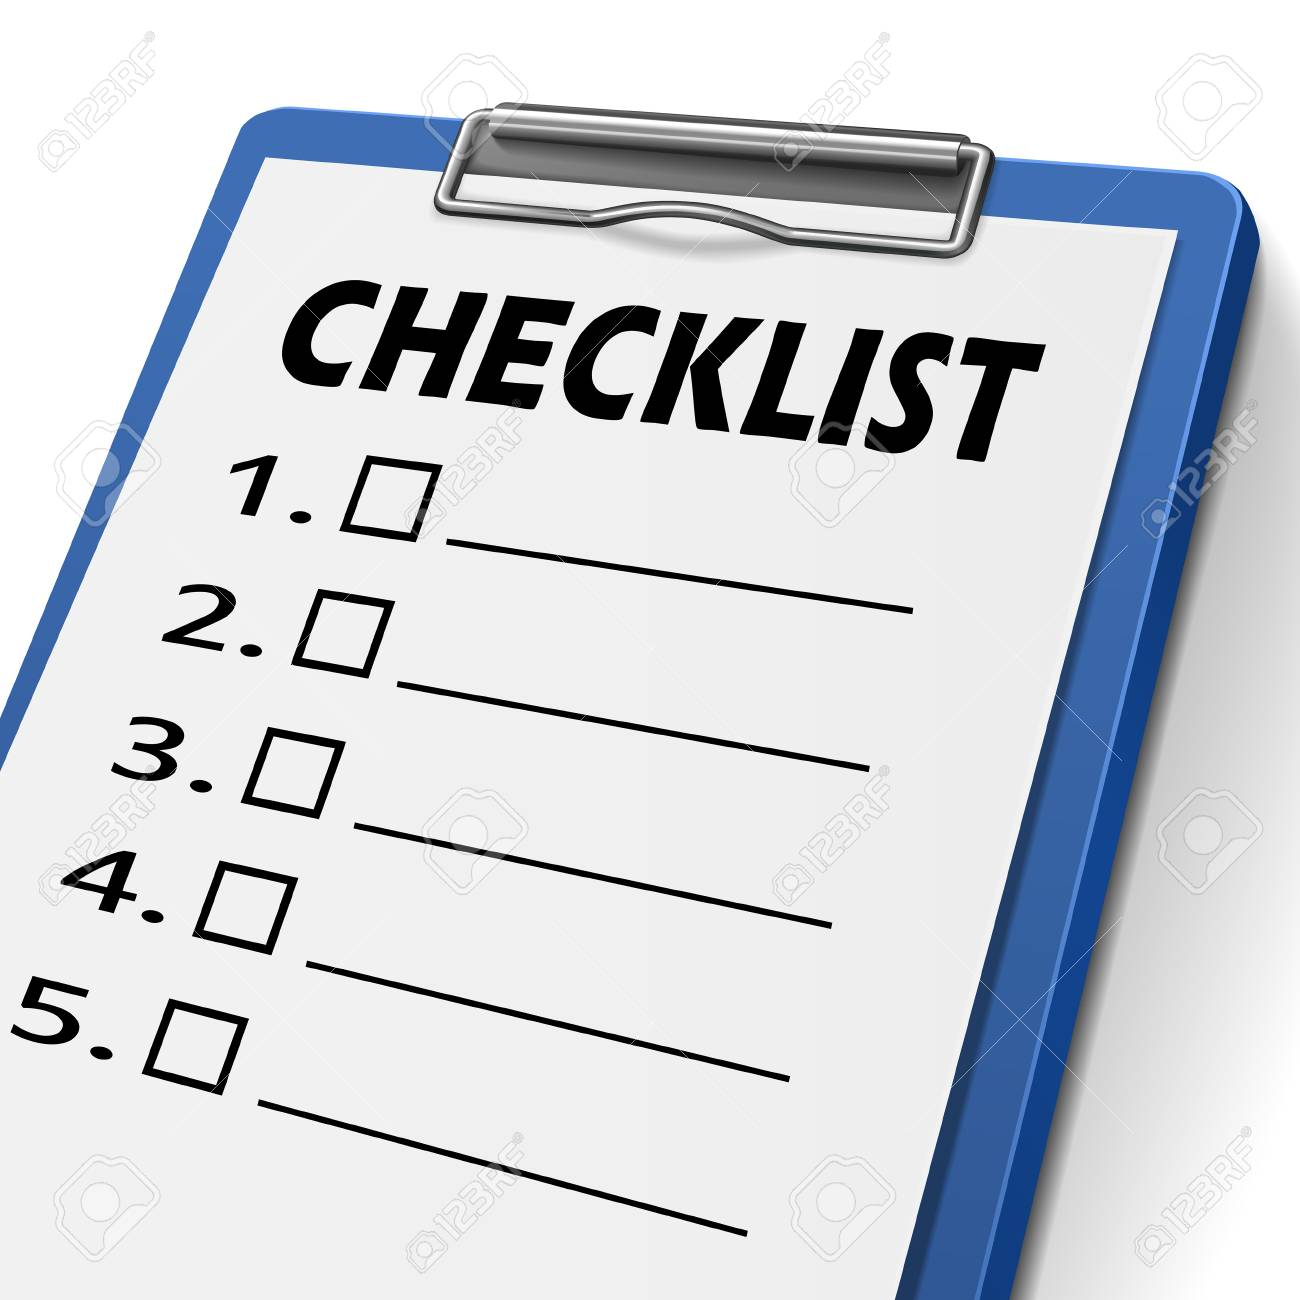 checklist clipboard with check boxes on it stock vector 30917664